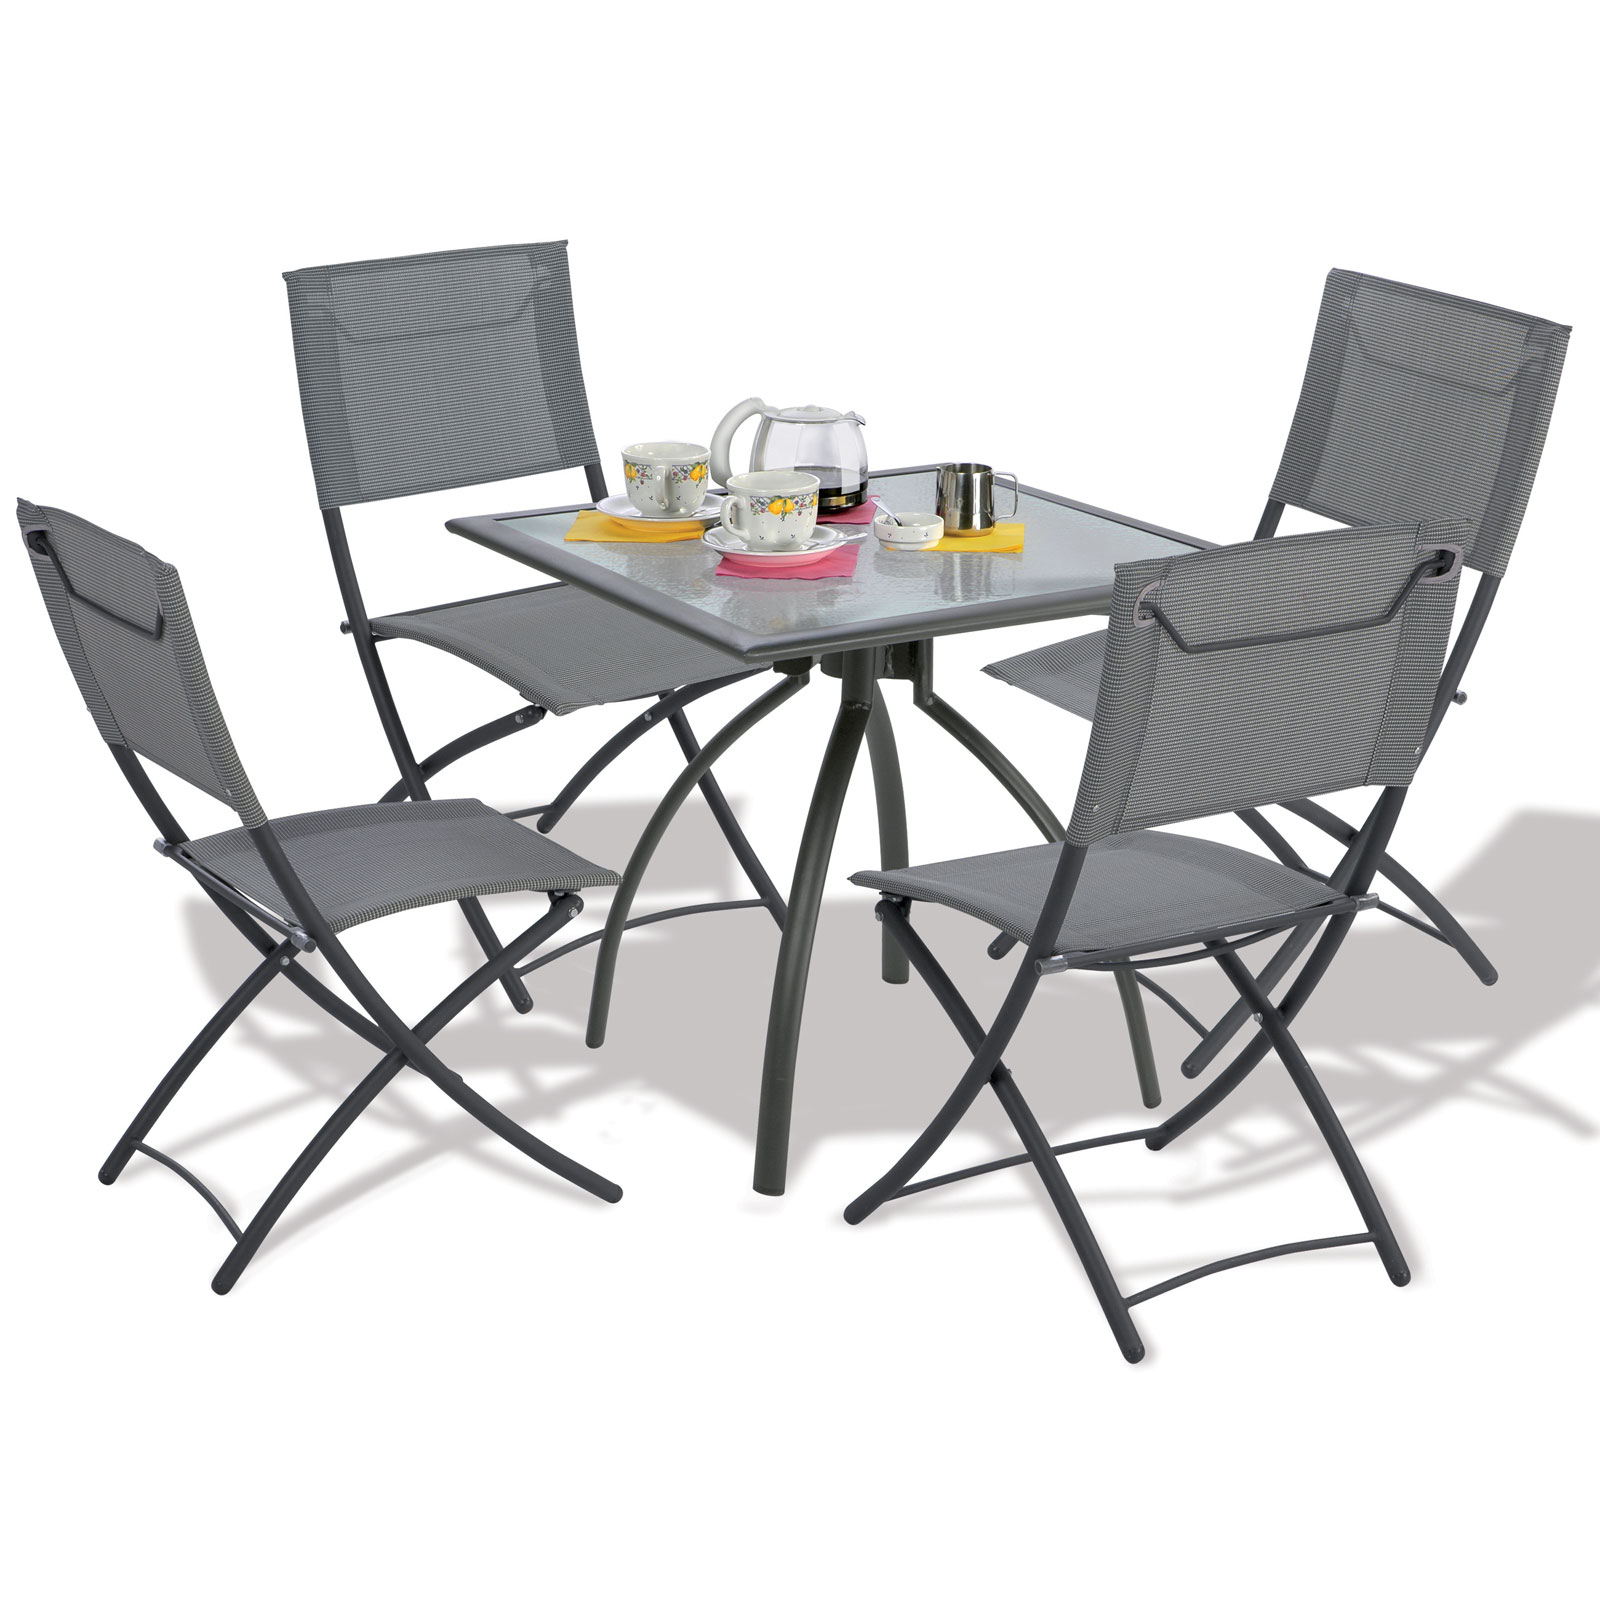 Ensemble table et chaise de jardin en plastique - veranda-styledevie.fr